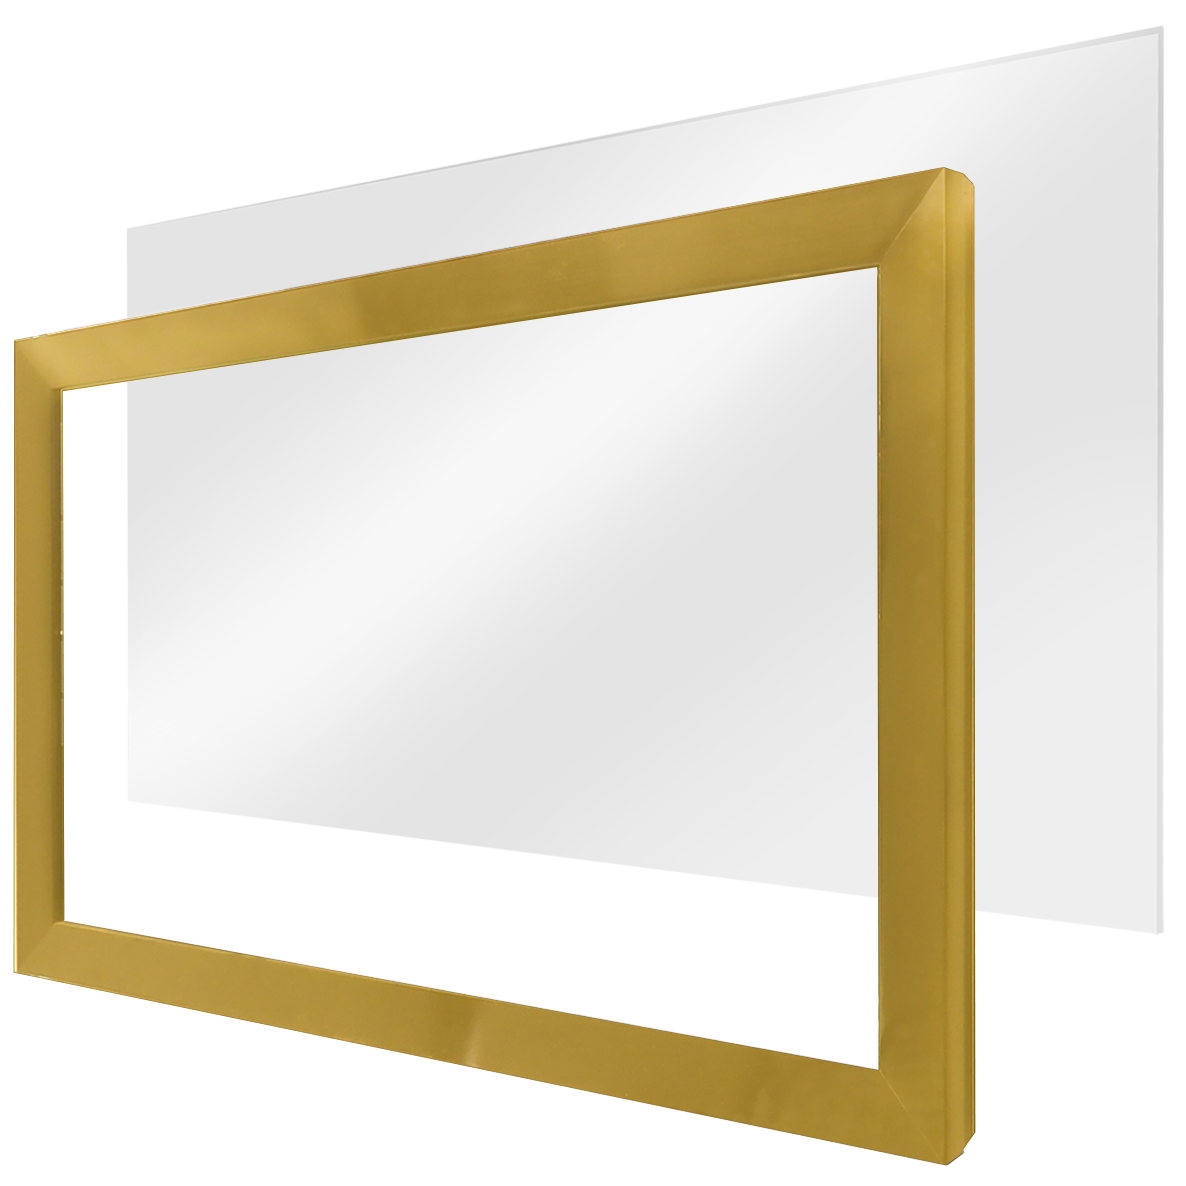 Frame Kit If You Already Have A Tv Between 32 Quot And 80